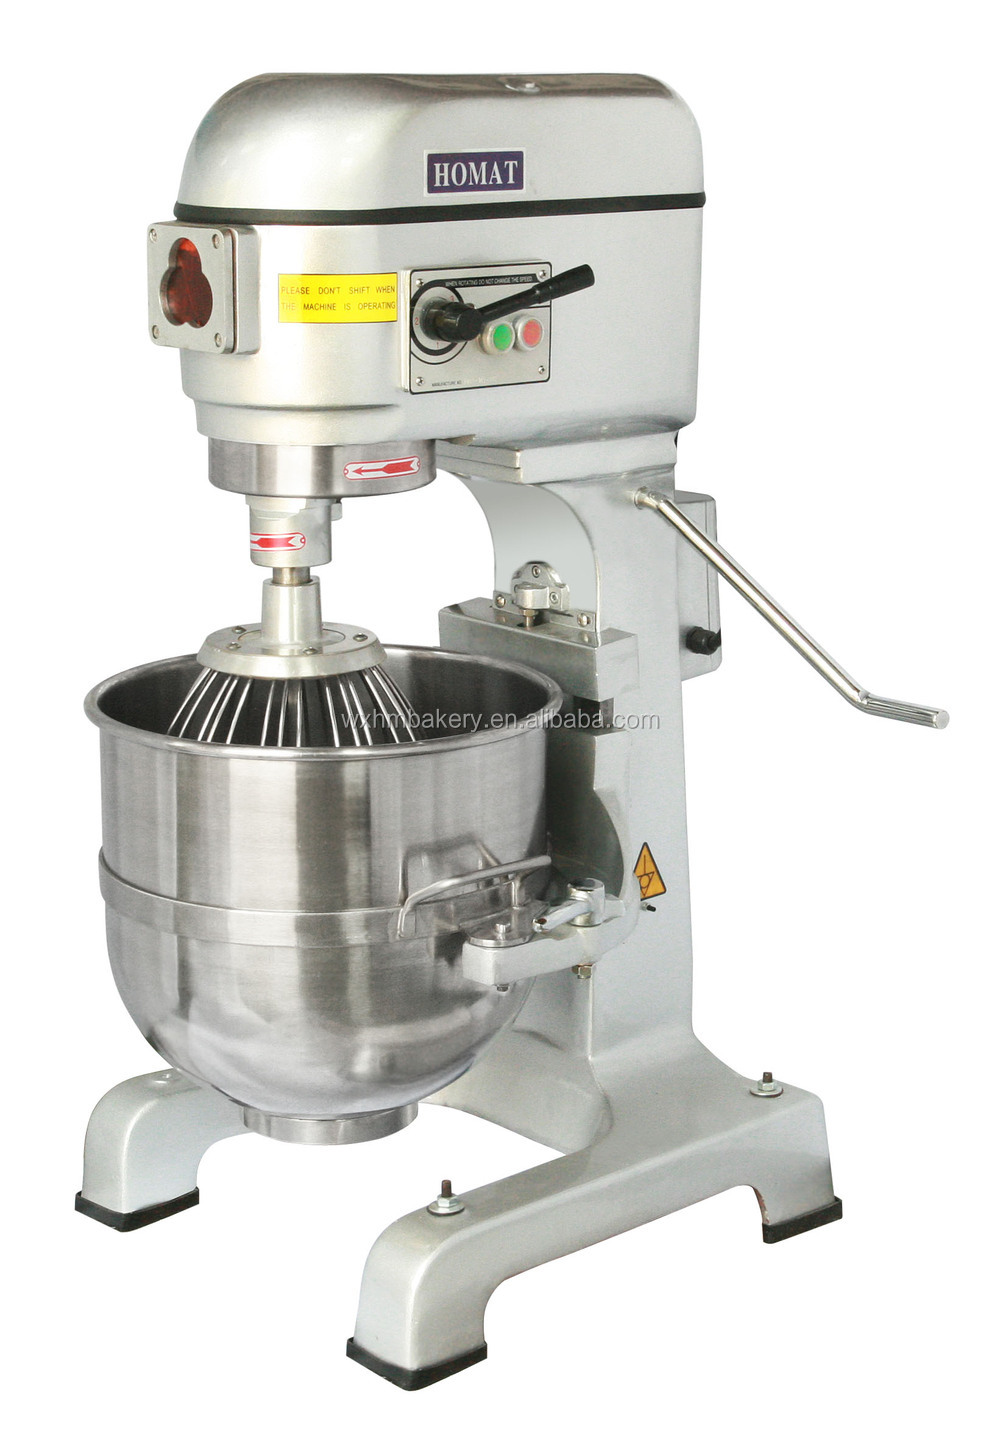 cake mixer machine planetary mixer food mixer made in china with ce from homat manufacturer. Black Bedroom Furniture Sets. Home Design Ideas